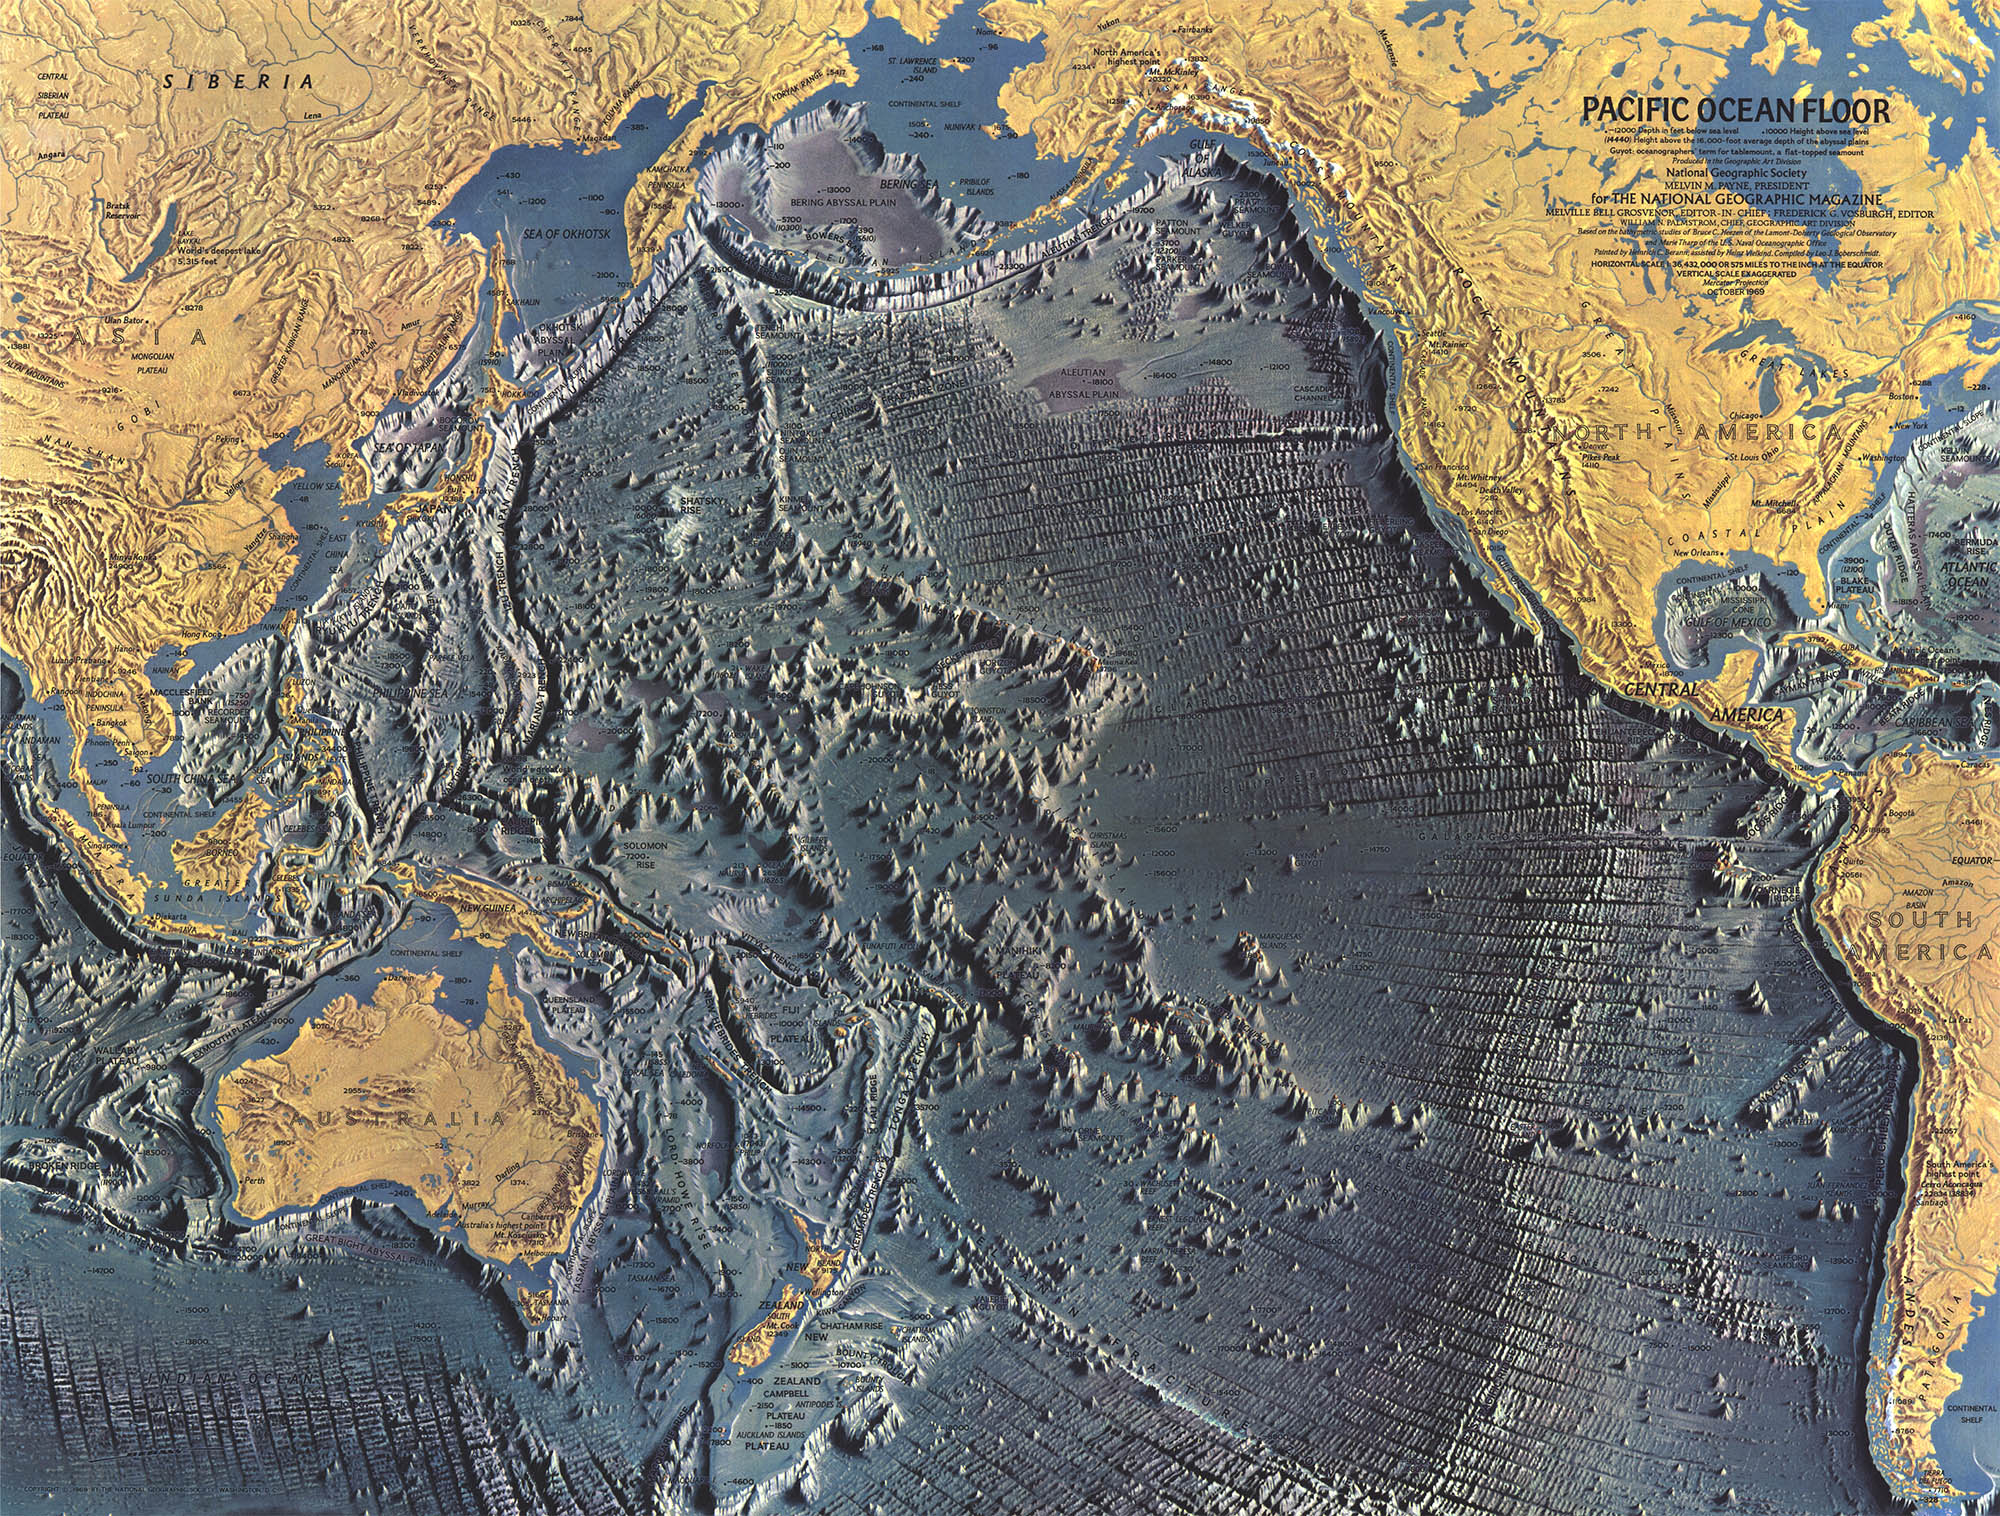 Ocean Floor Elevation Map : Geogarage book pacific the ocean of future by